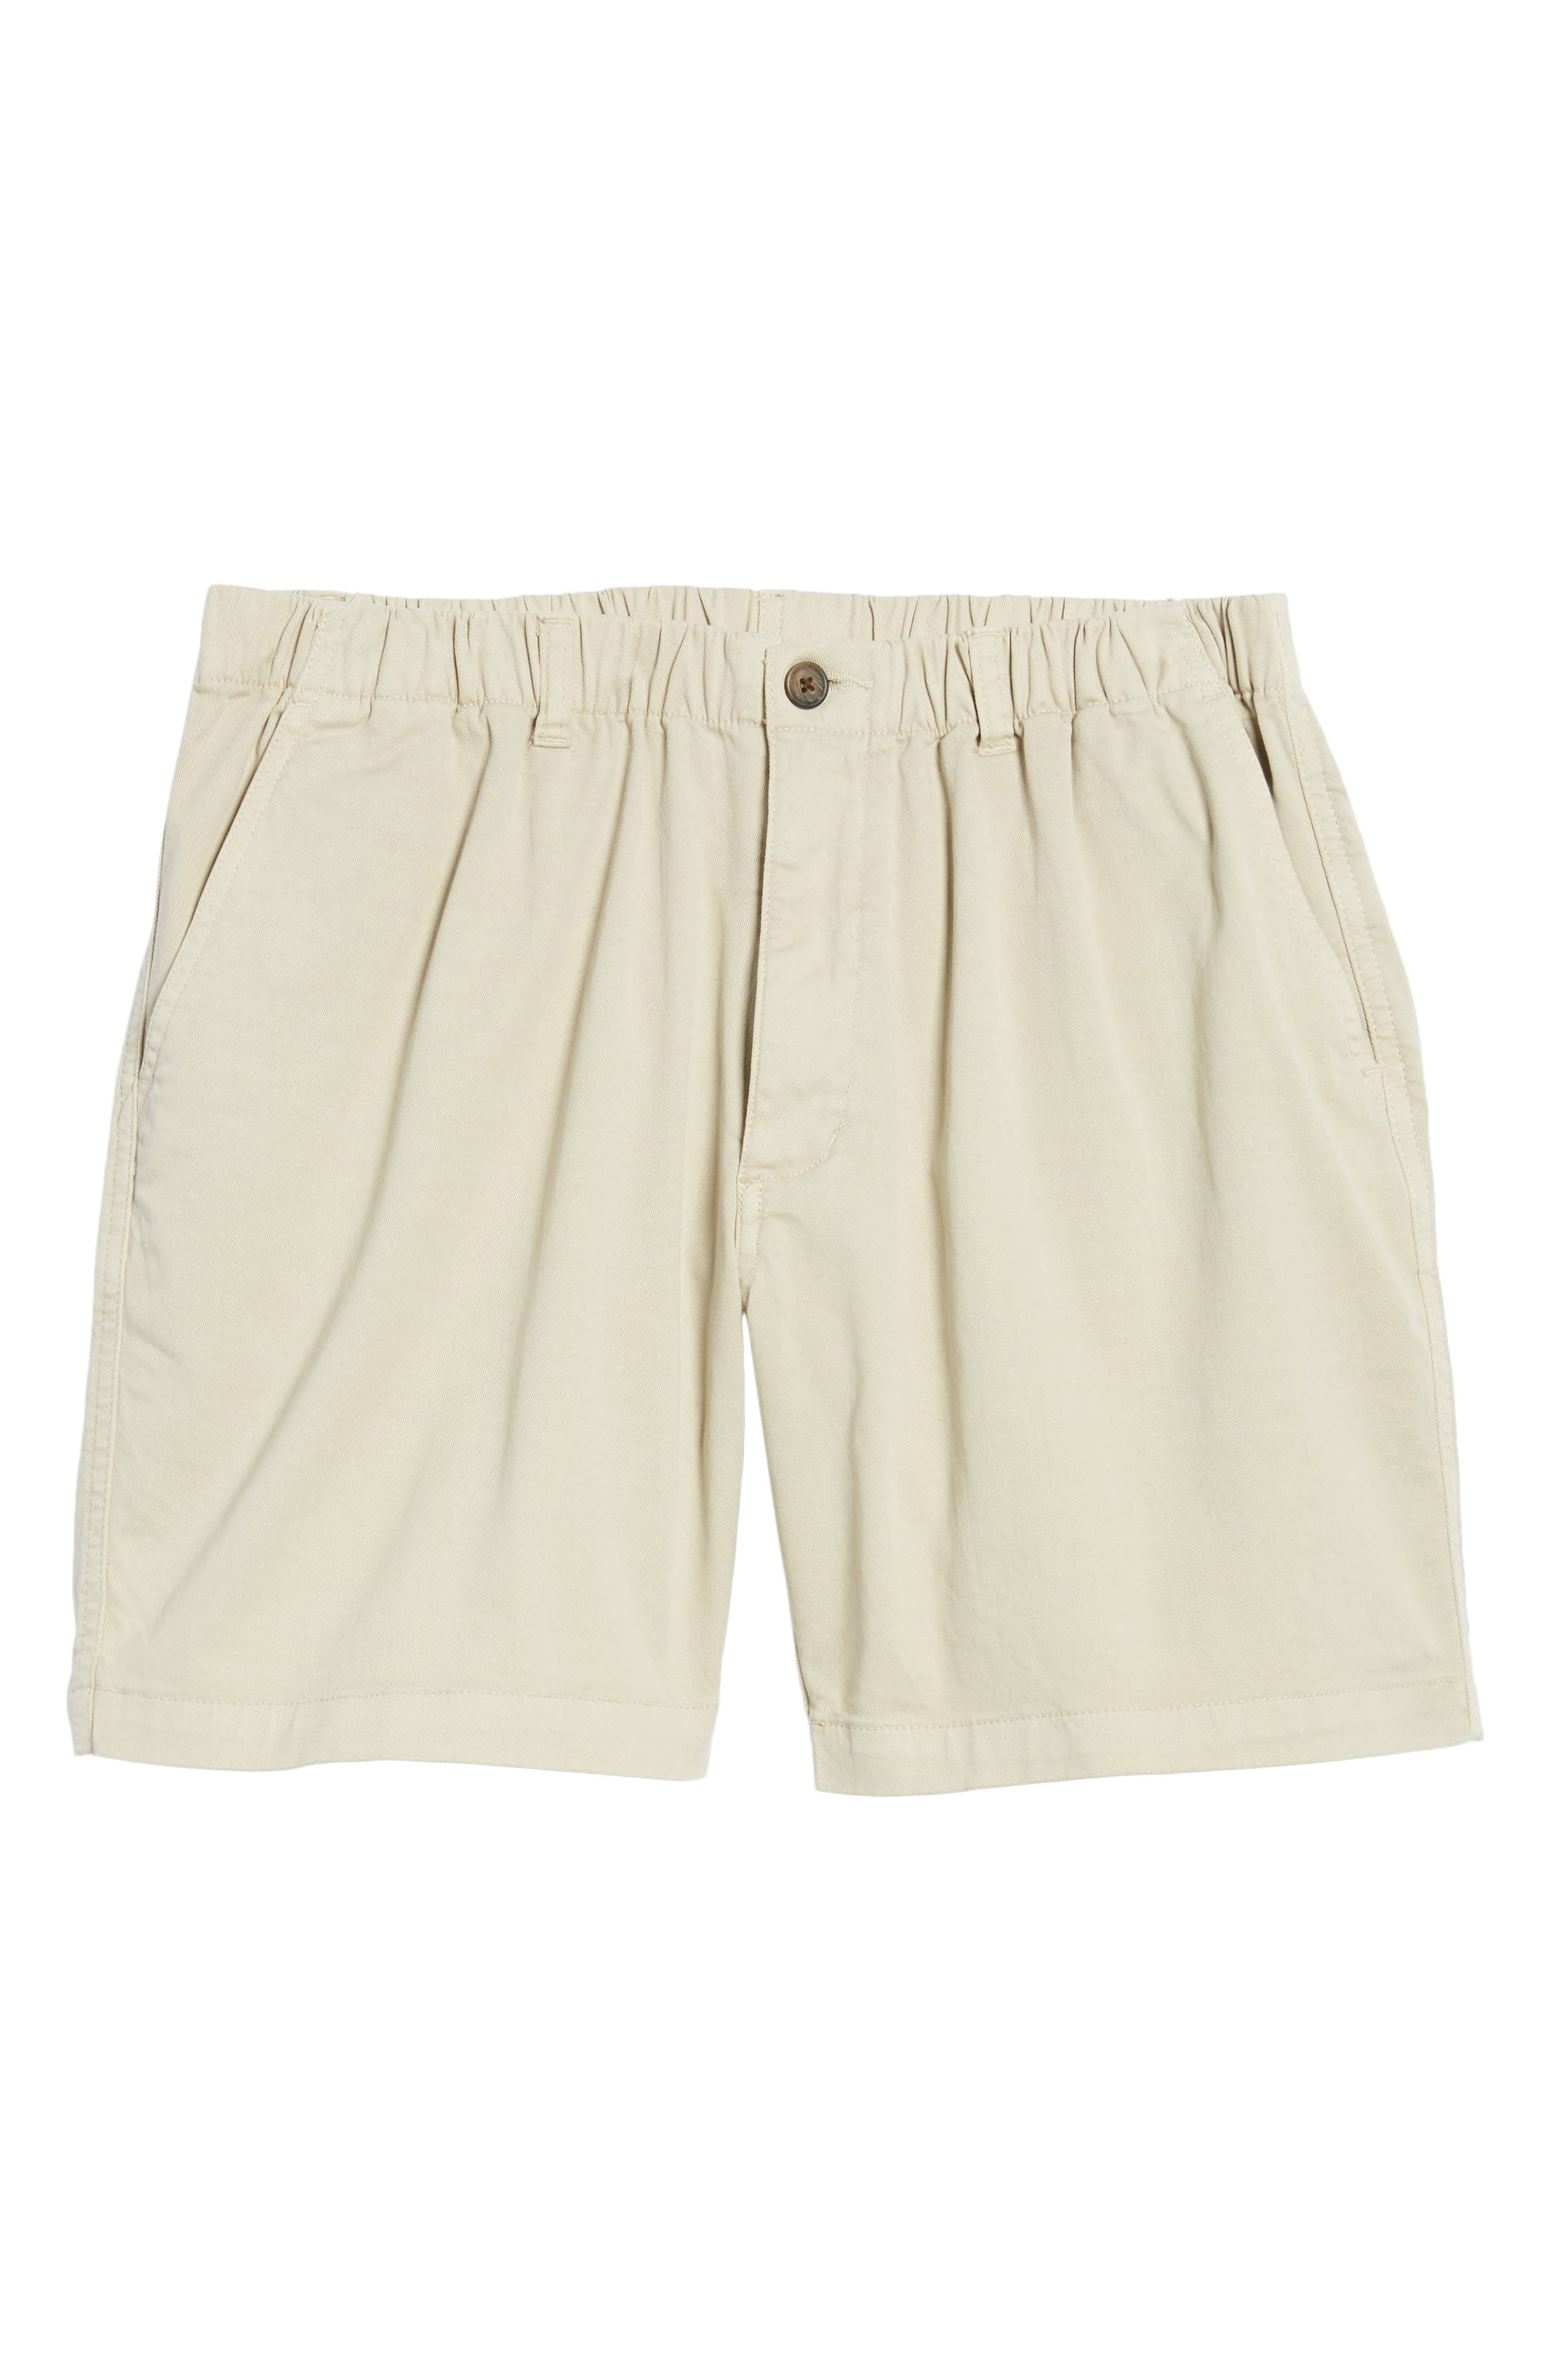 7in Snappers Elastic Waist Shorts,                             Alternate thumbnail 6, color,                             STONE